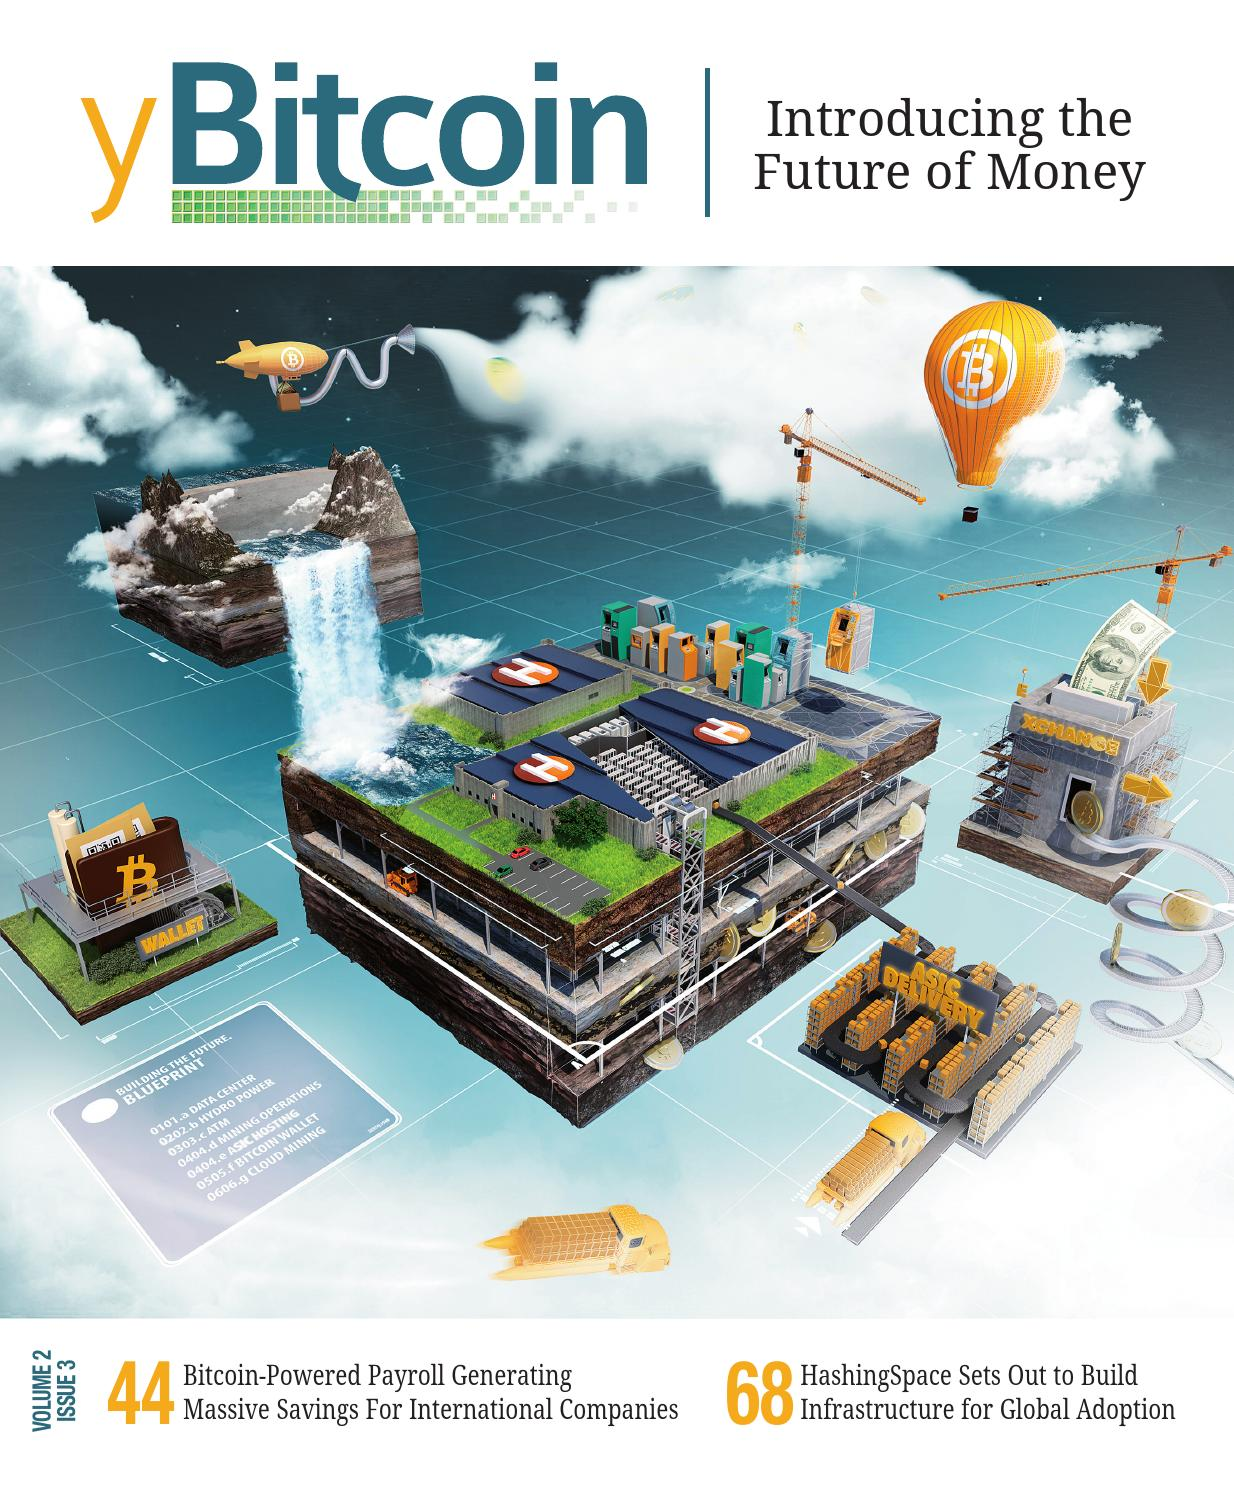 Volume 2, Issue 3 by yBitcoin - issuu